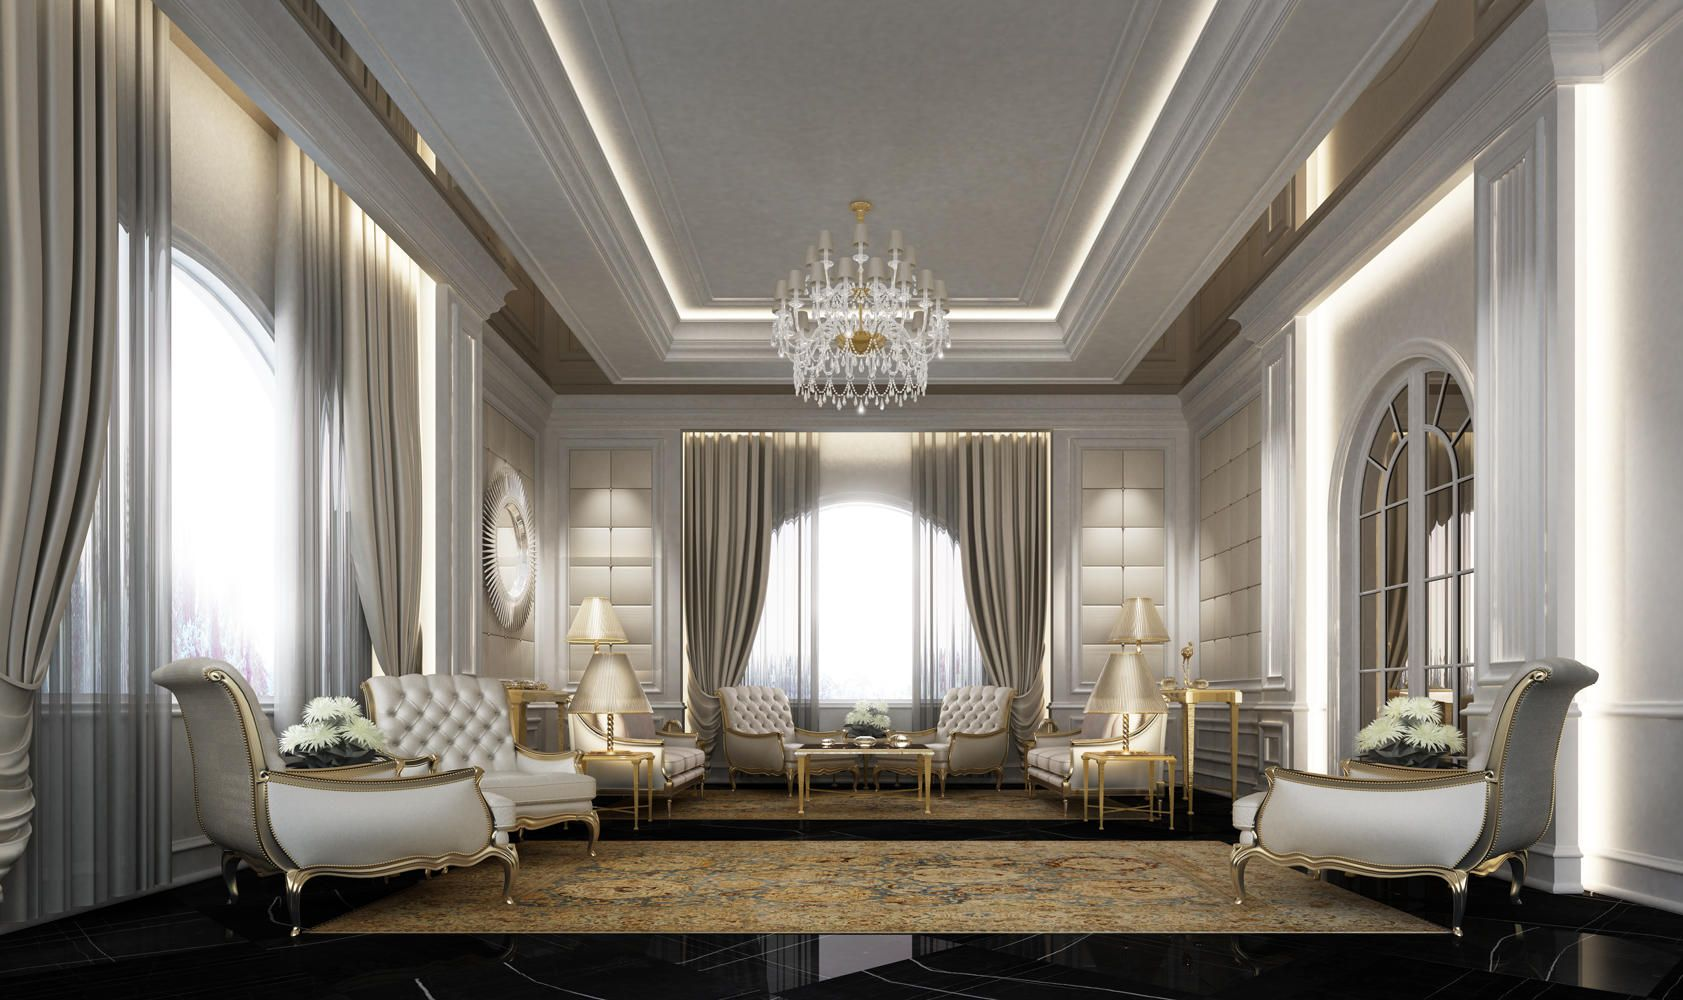 Arabic majlis designs ions design interior design for Home decorating company